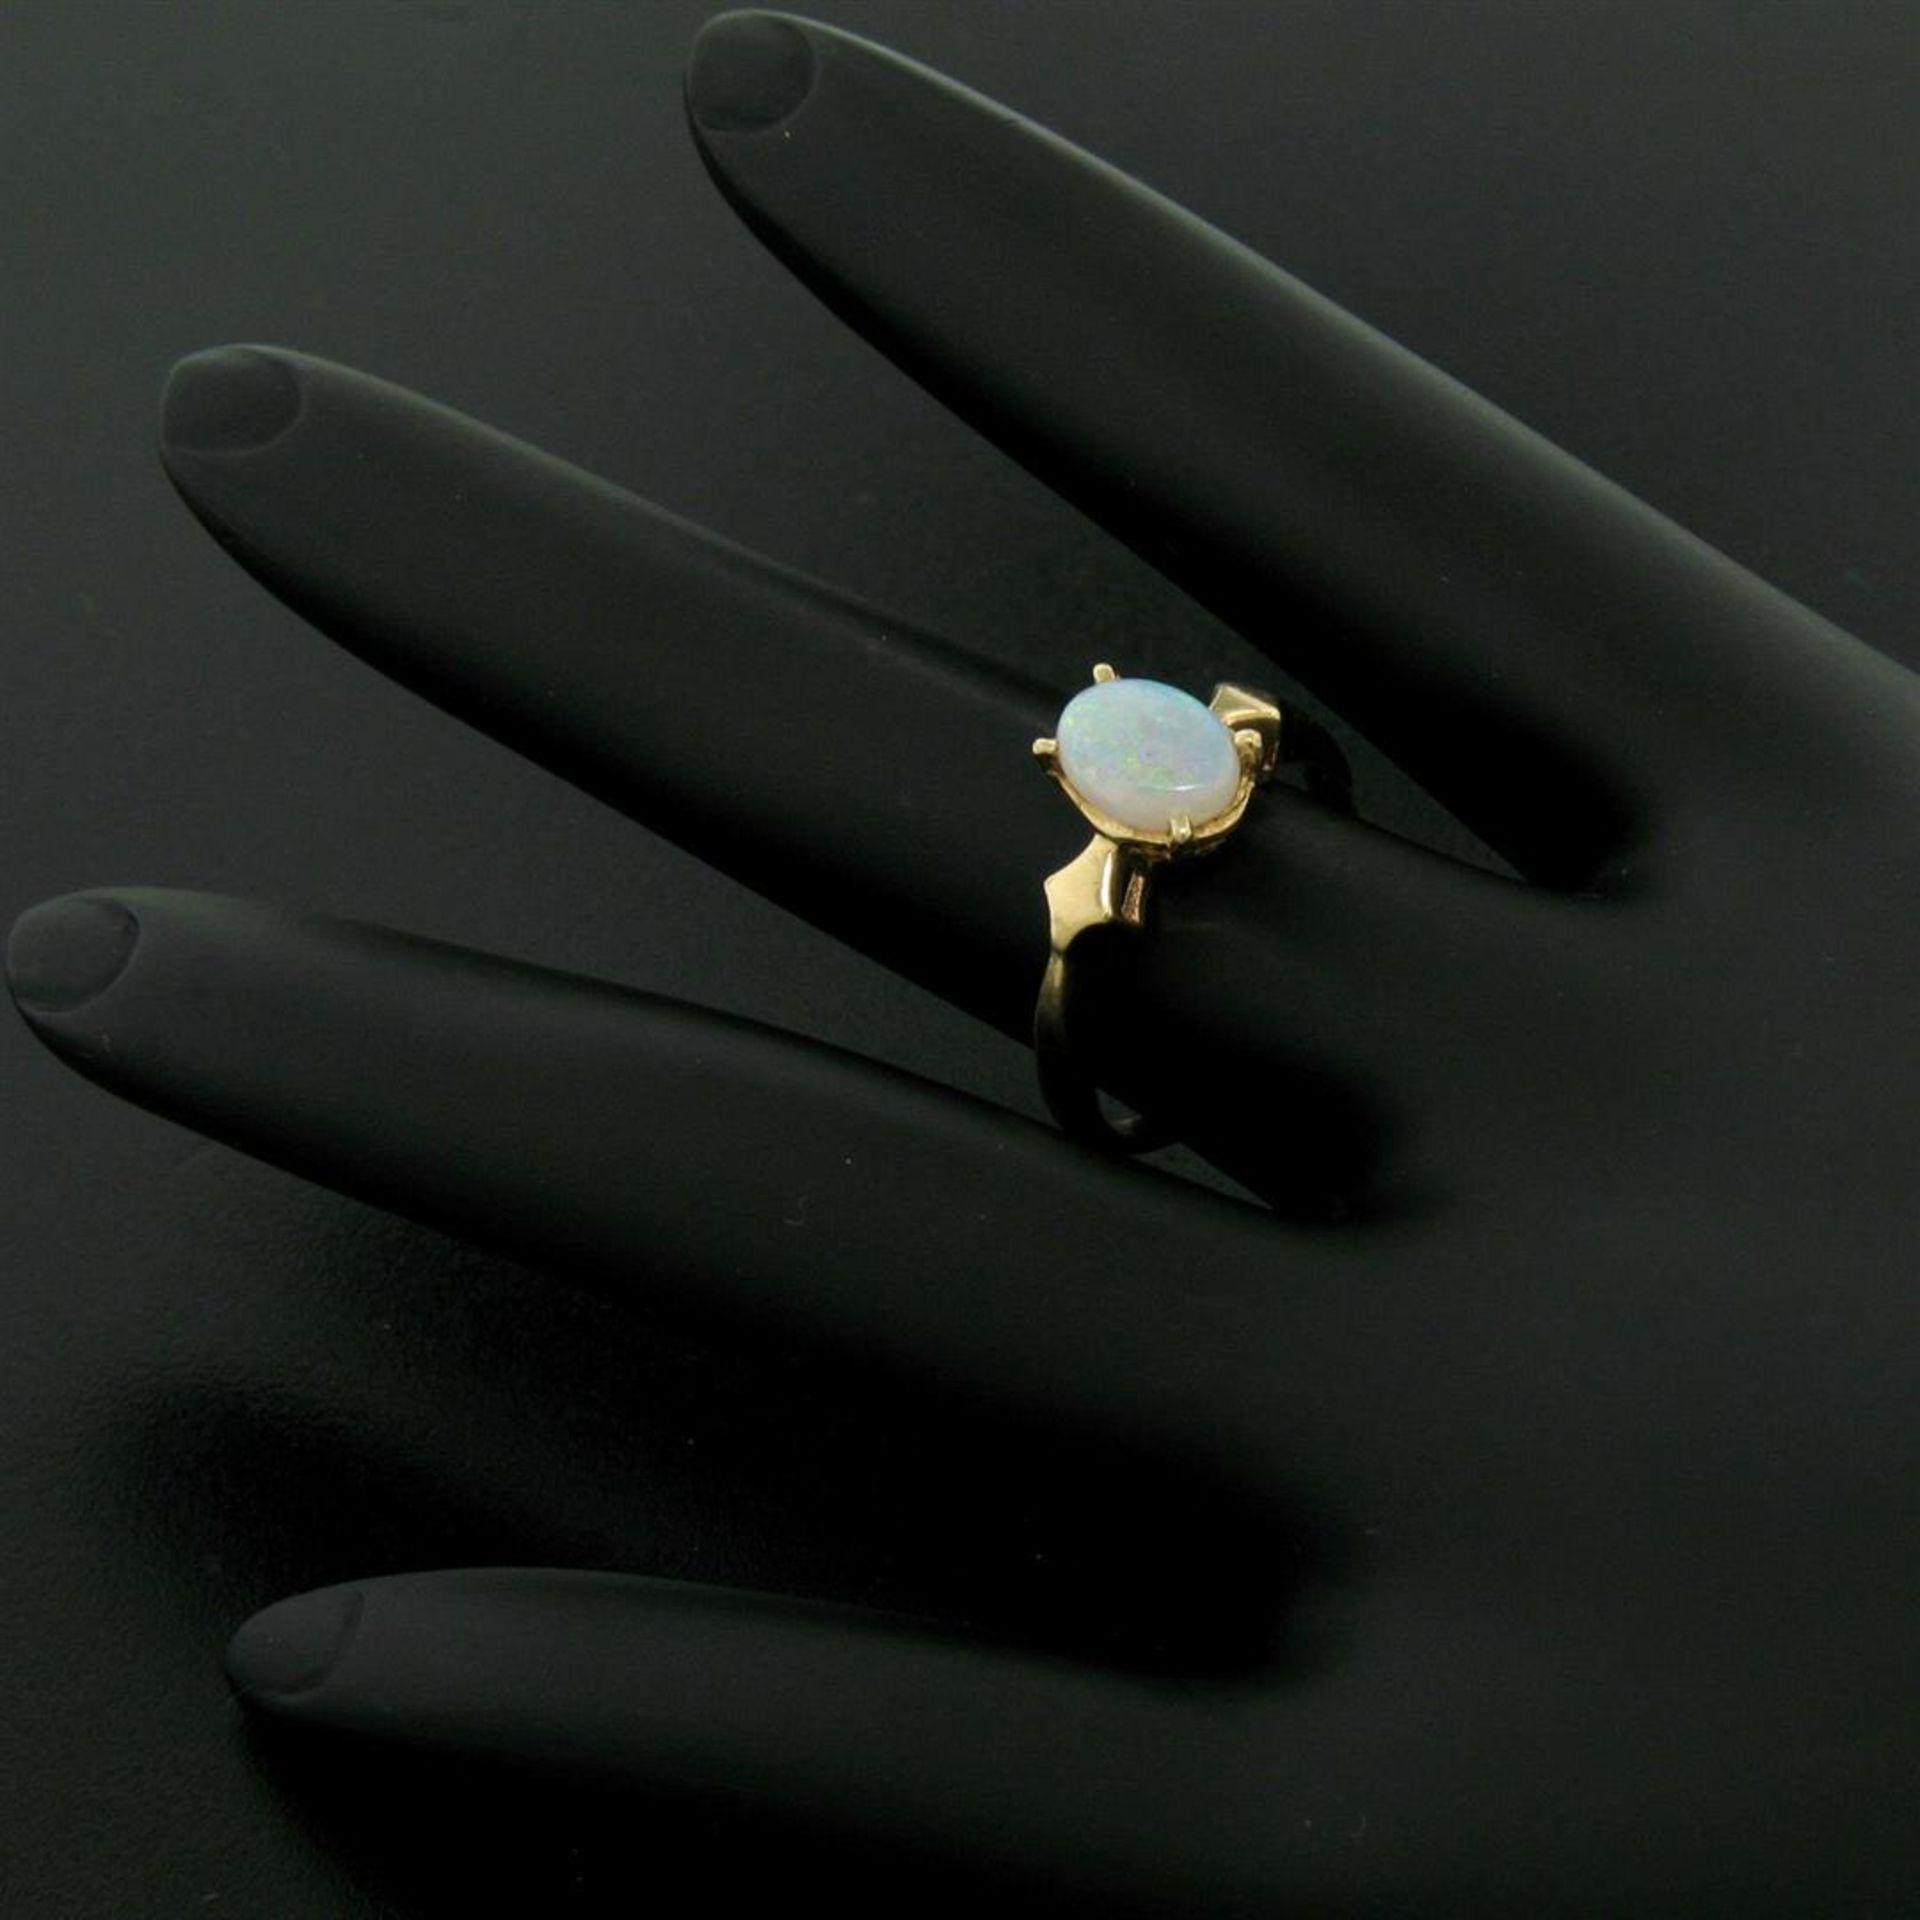 Vintage 14K Yellow Gold 0.65ct Petite Oval Cabochon Opal Solitaire Ring Size 6 - Image 9 of 9